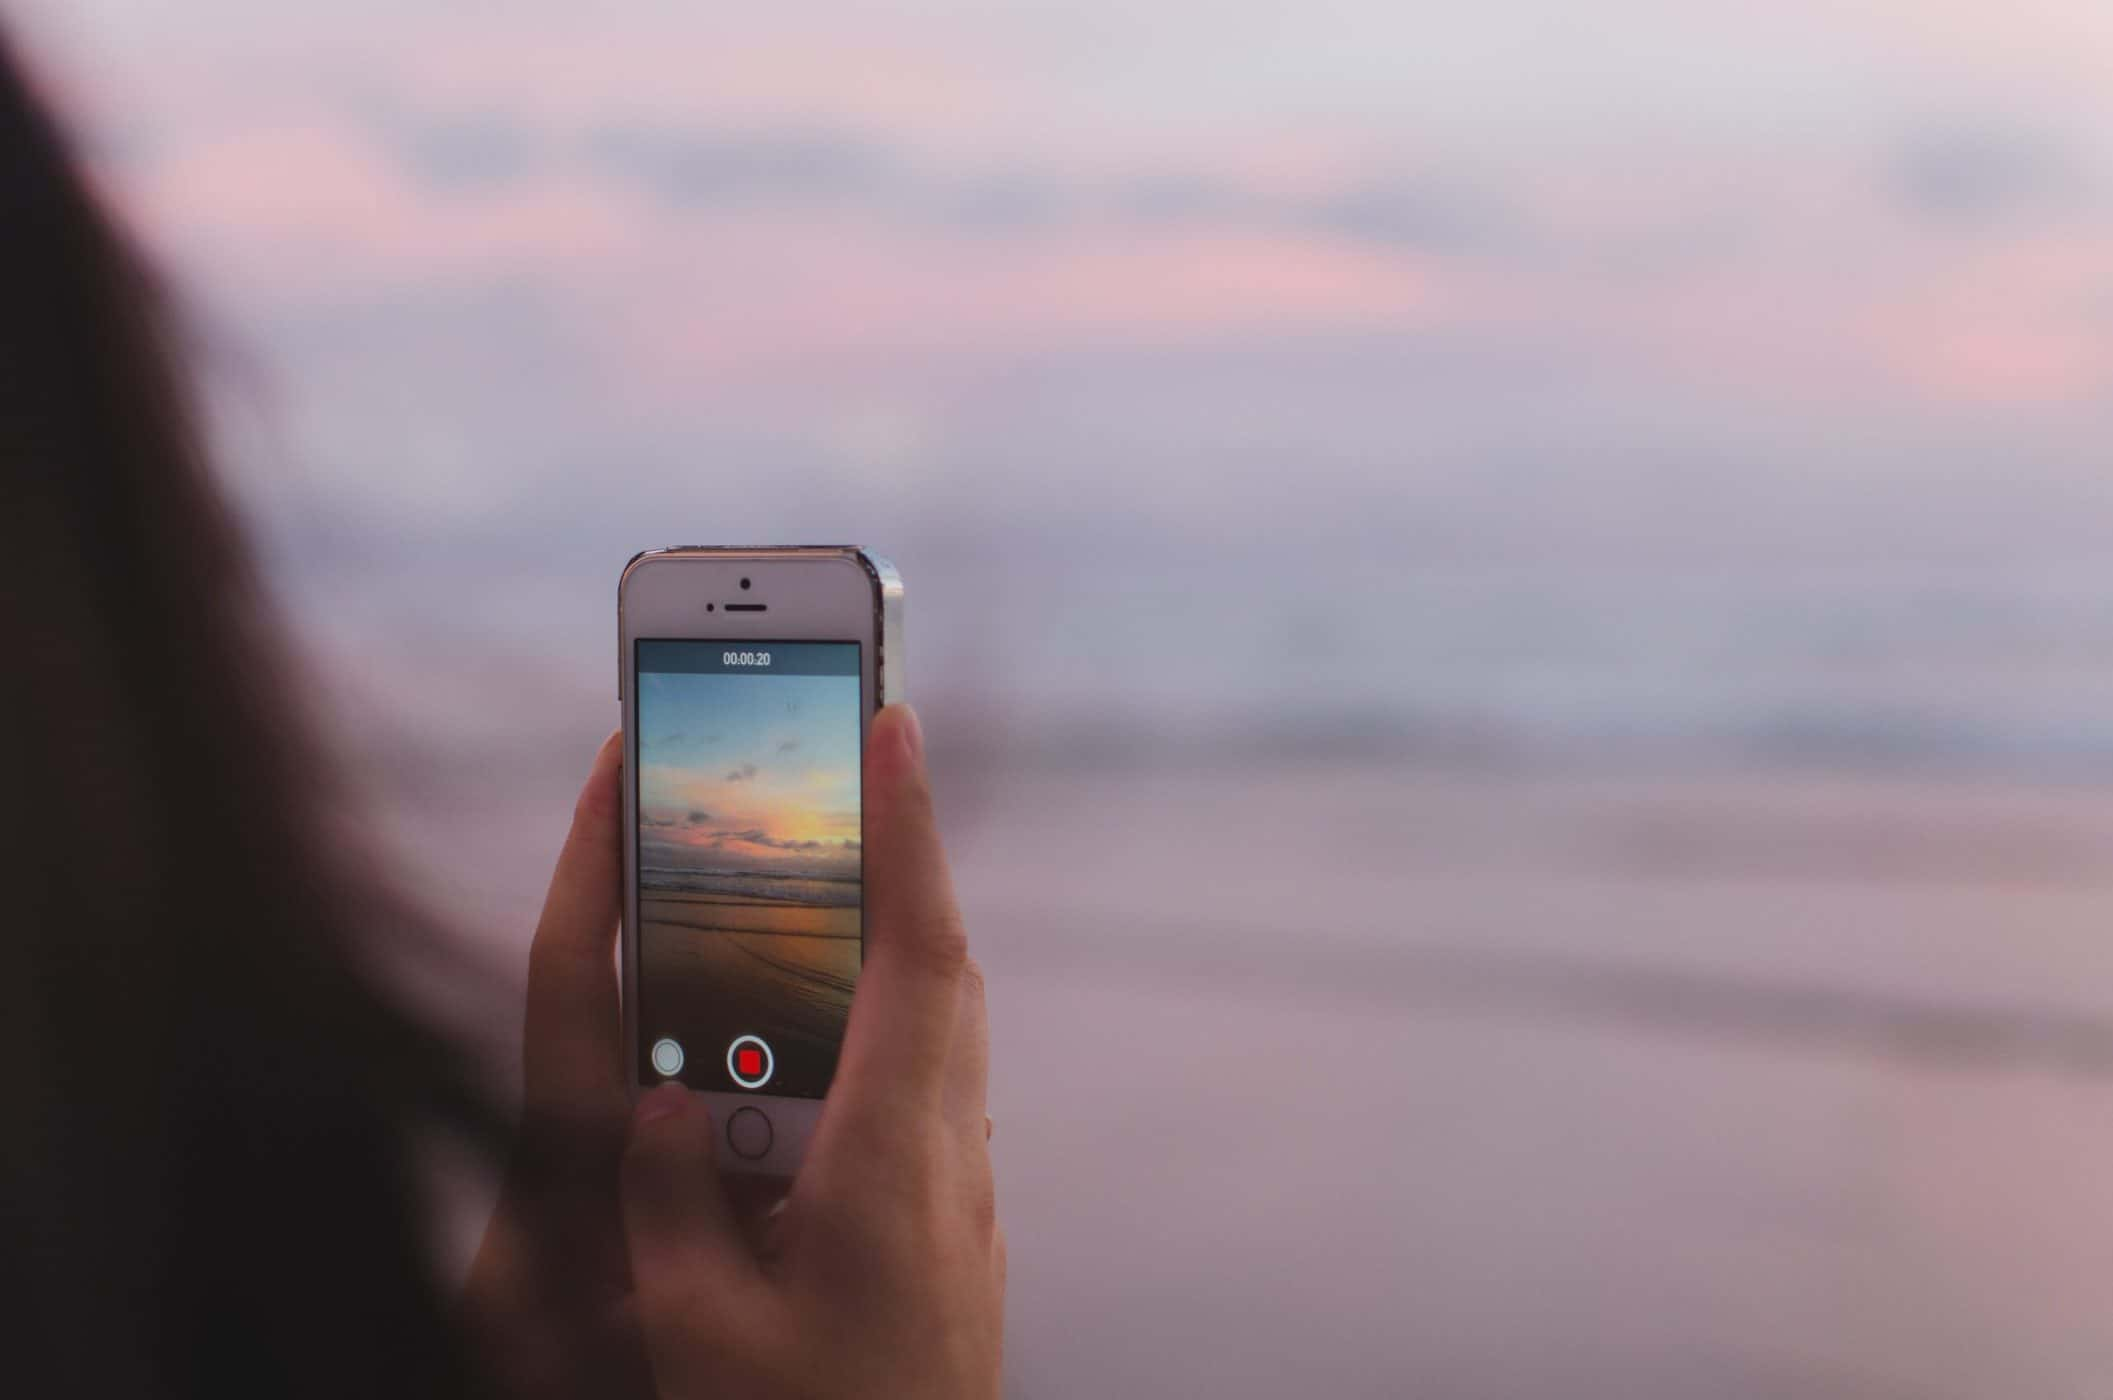 Videoing sunset and sea on mobile phone.